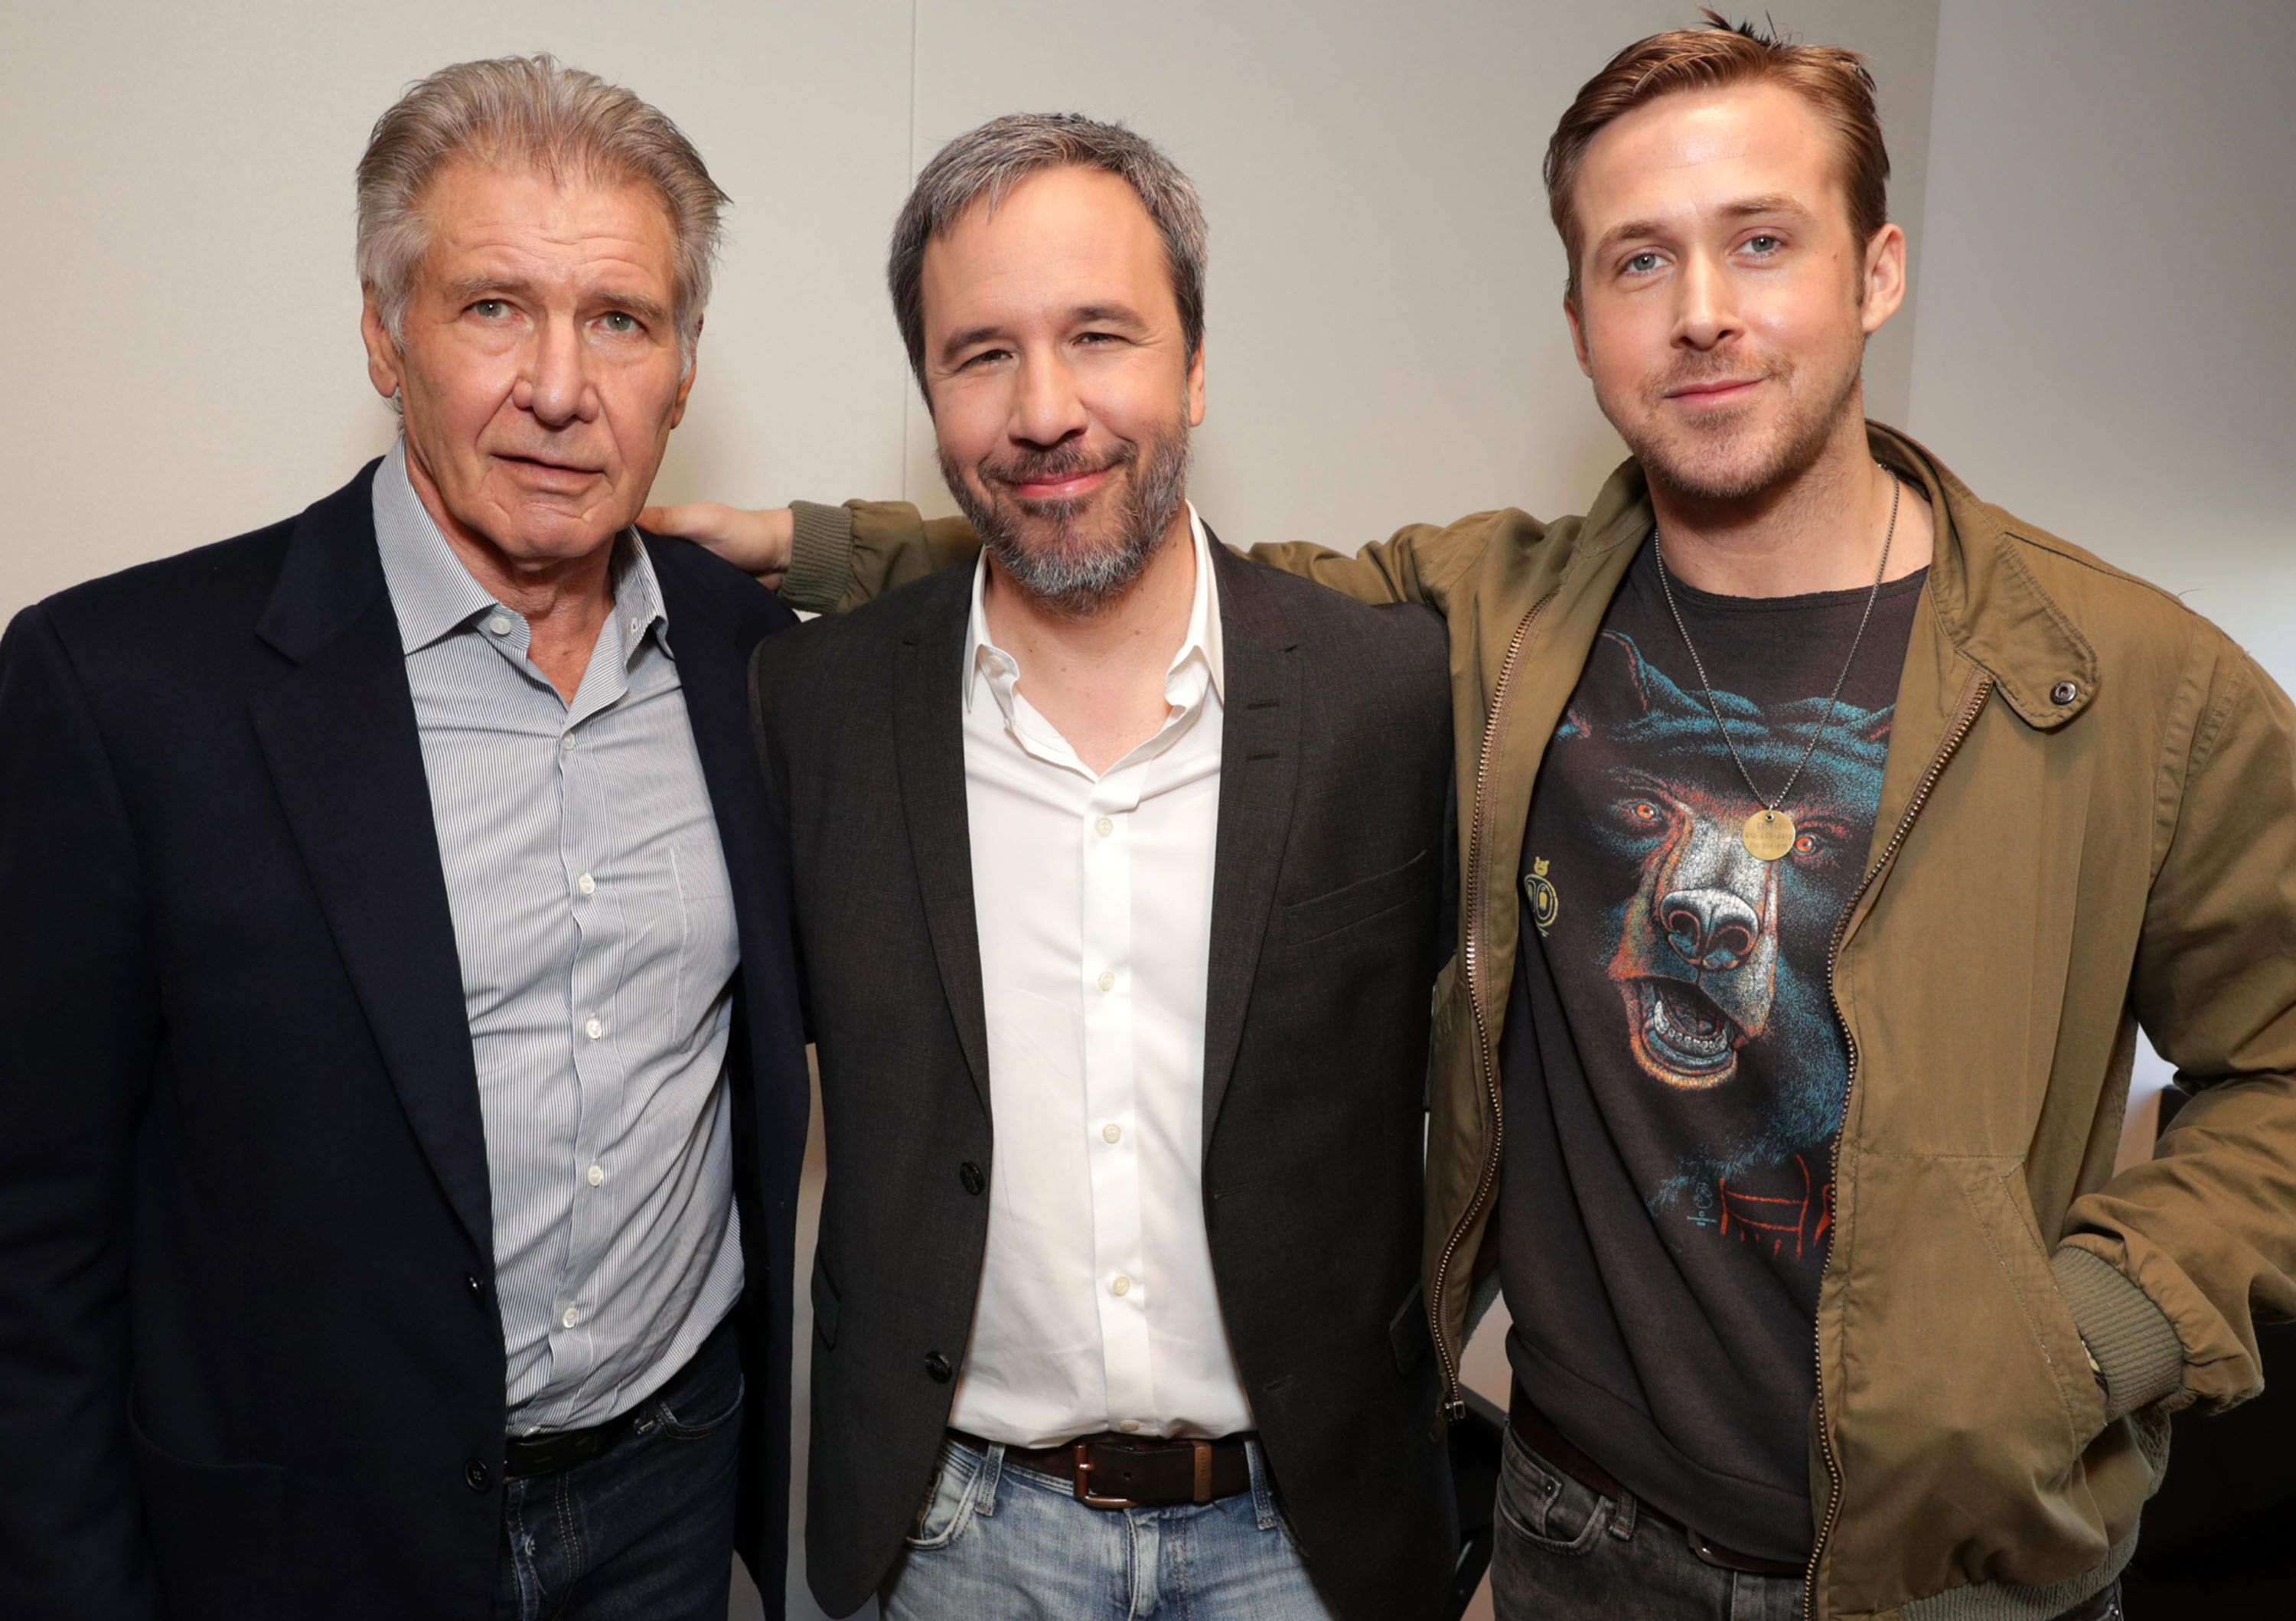 'Blade Runner 2049' Opens With $6.8 Million in Early International Box Office